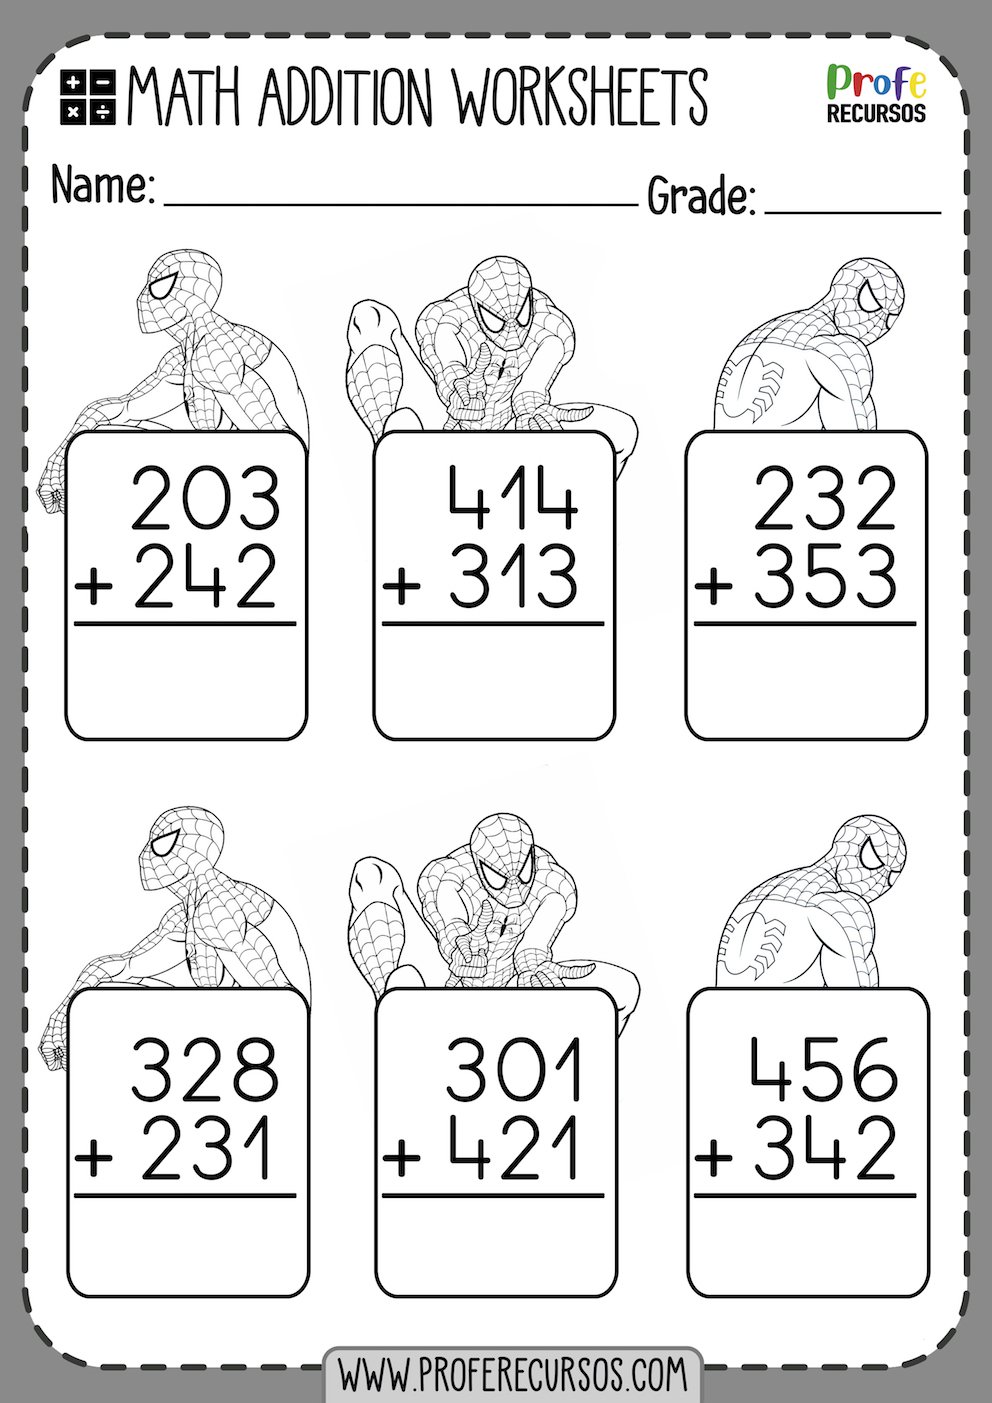 Addition Worksheets to Print